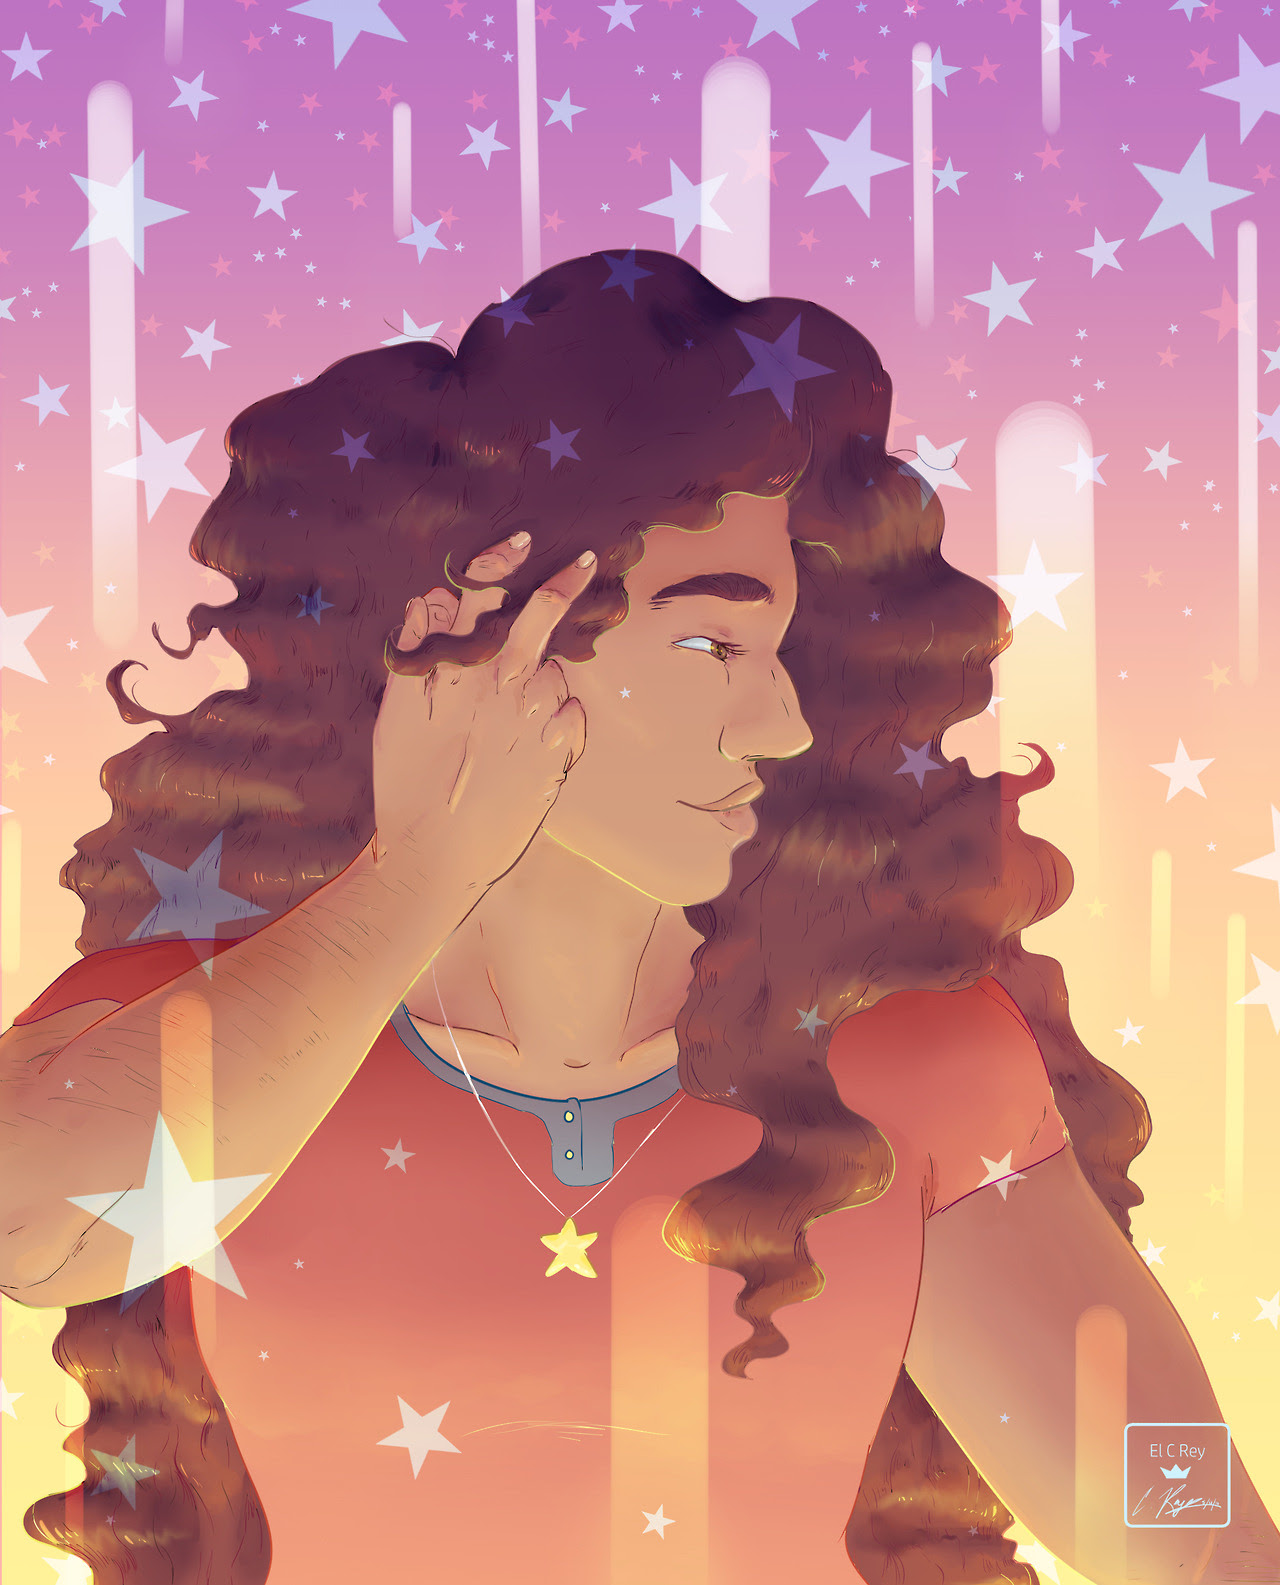 """""""Starlight"""" Digital Illustration; Stevonnie from Steven Universe. -C.Reyes (El C Rey); 051817 (Will be available as a print on my storenvy soon!)"""